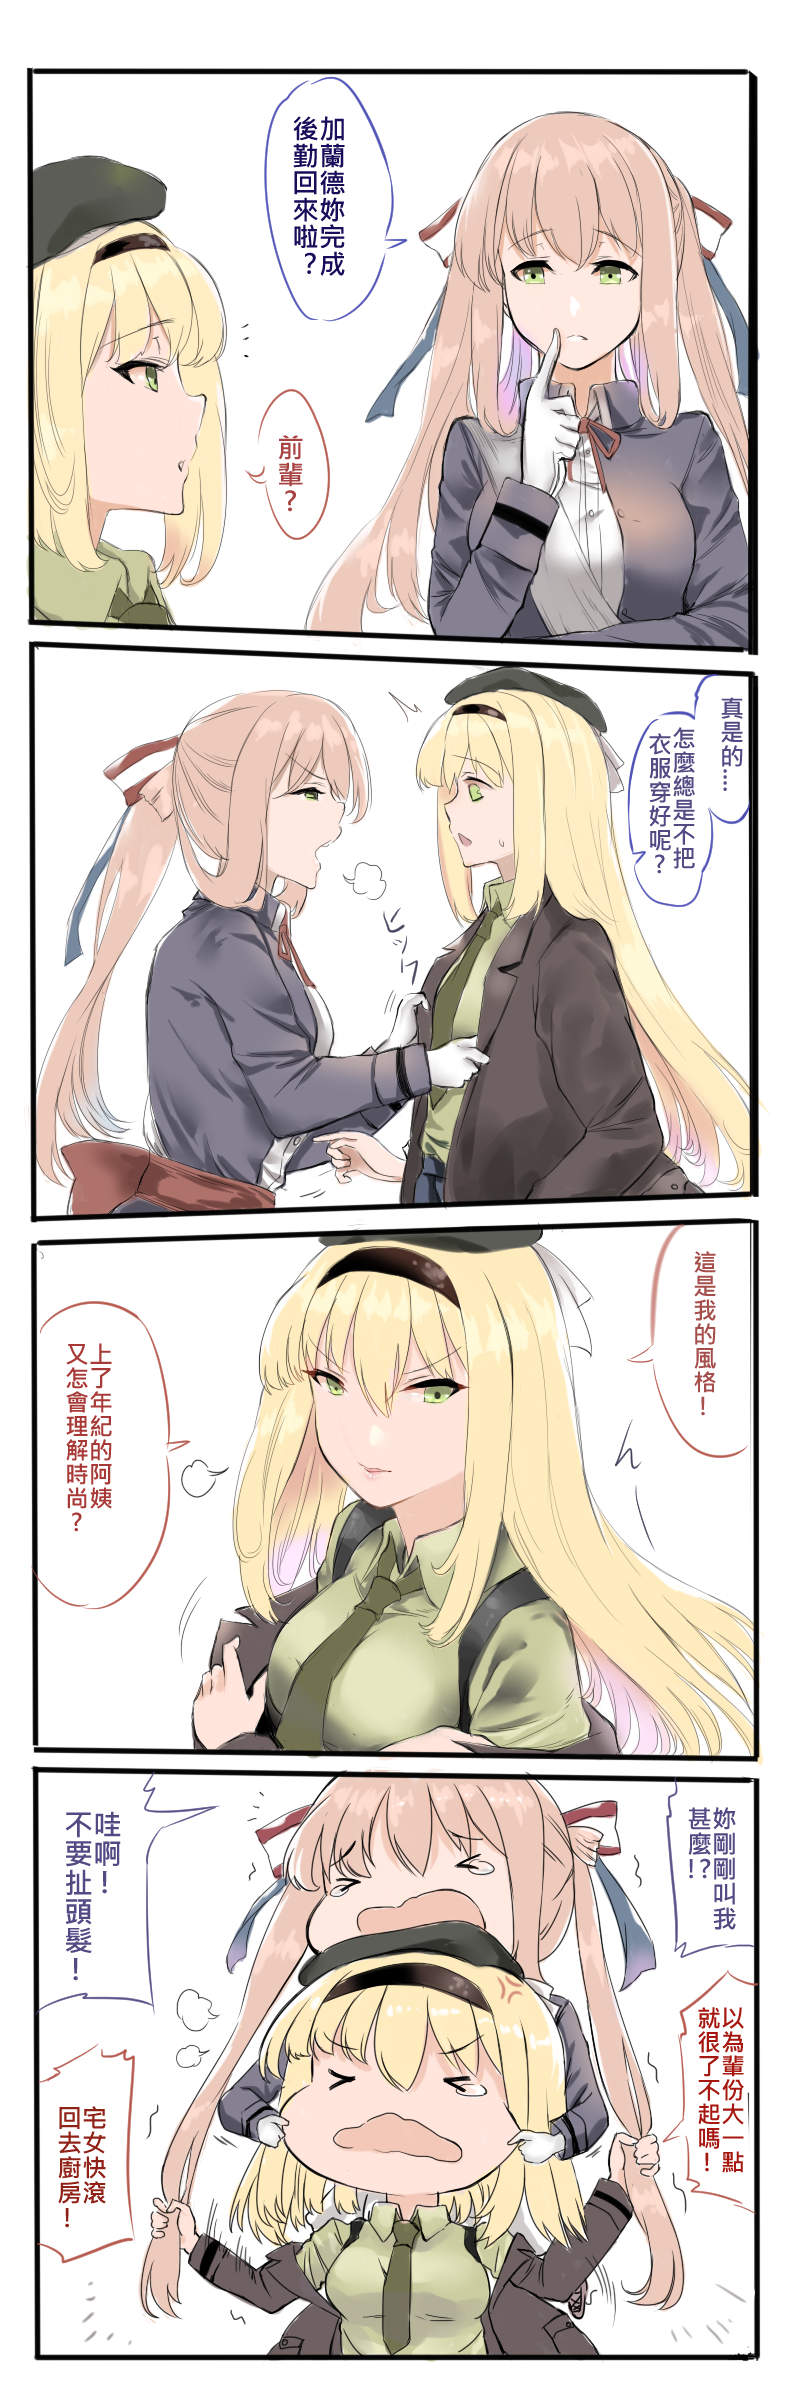 girls frontline an-94 Phineas and ferb sex pictures